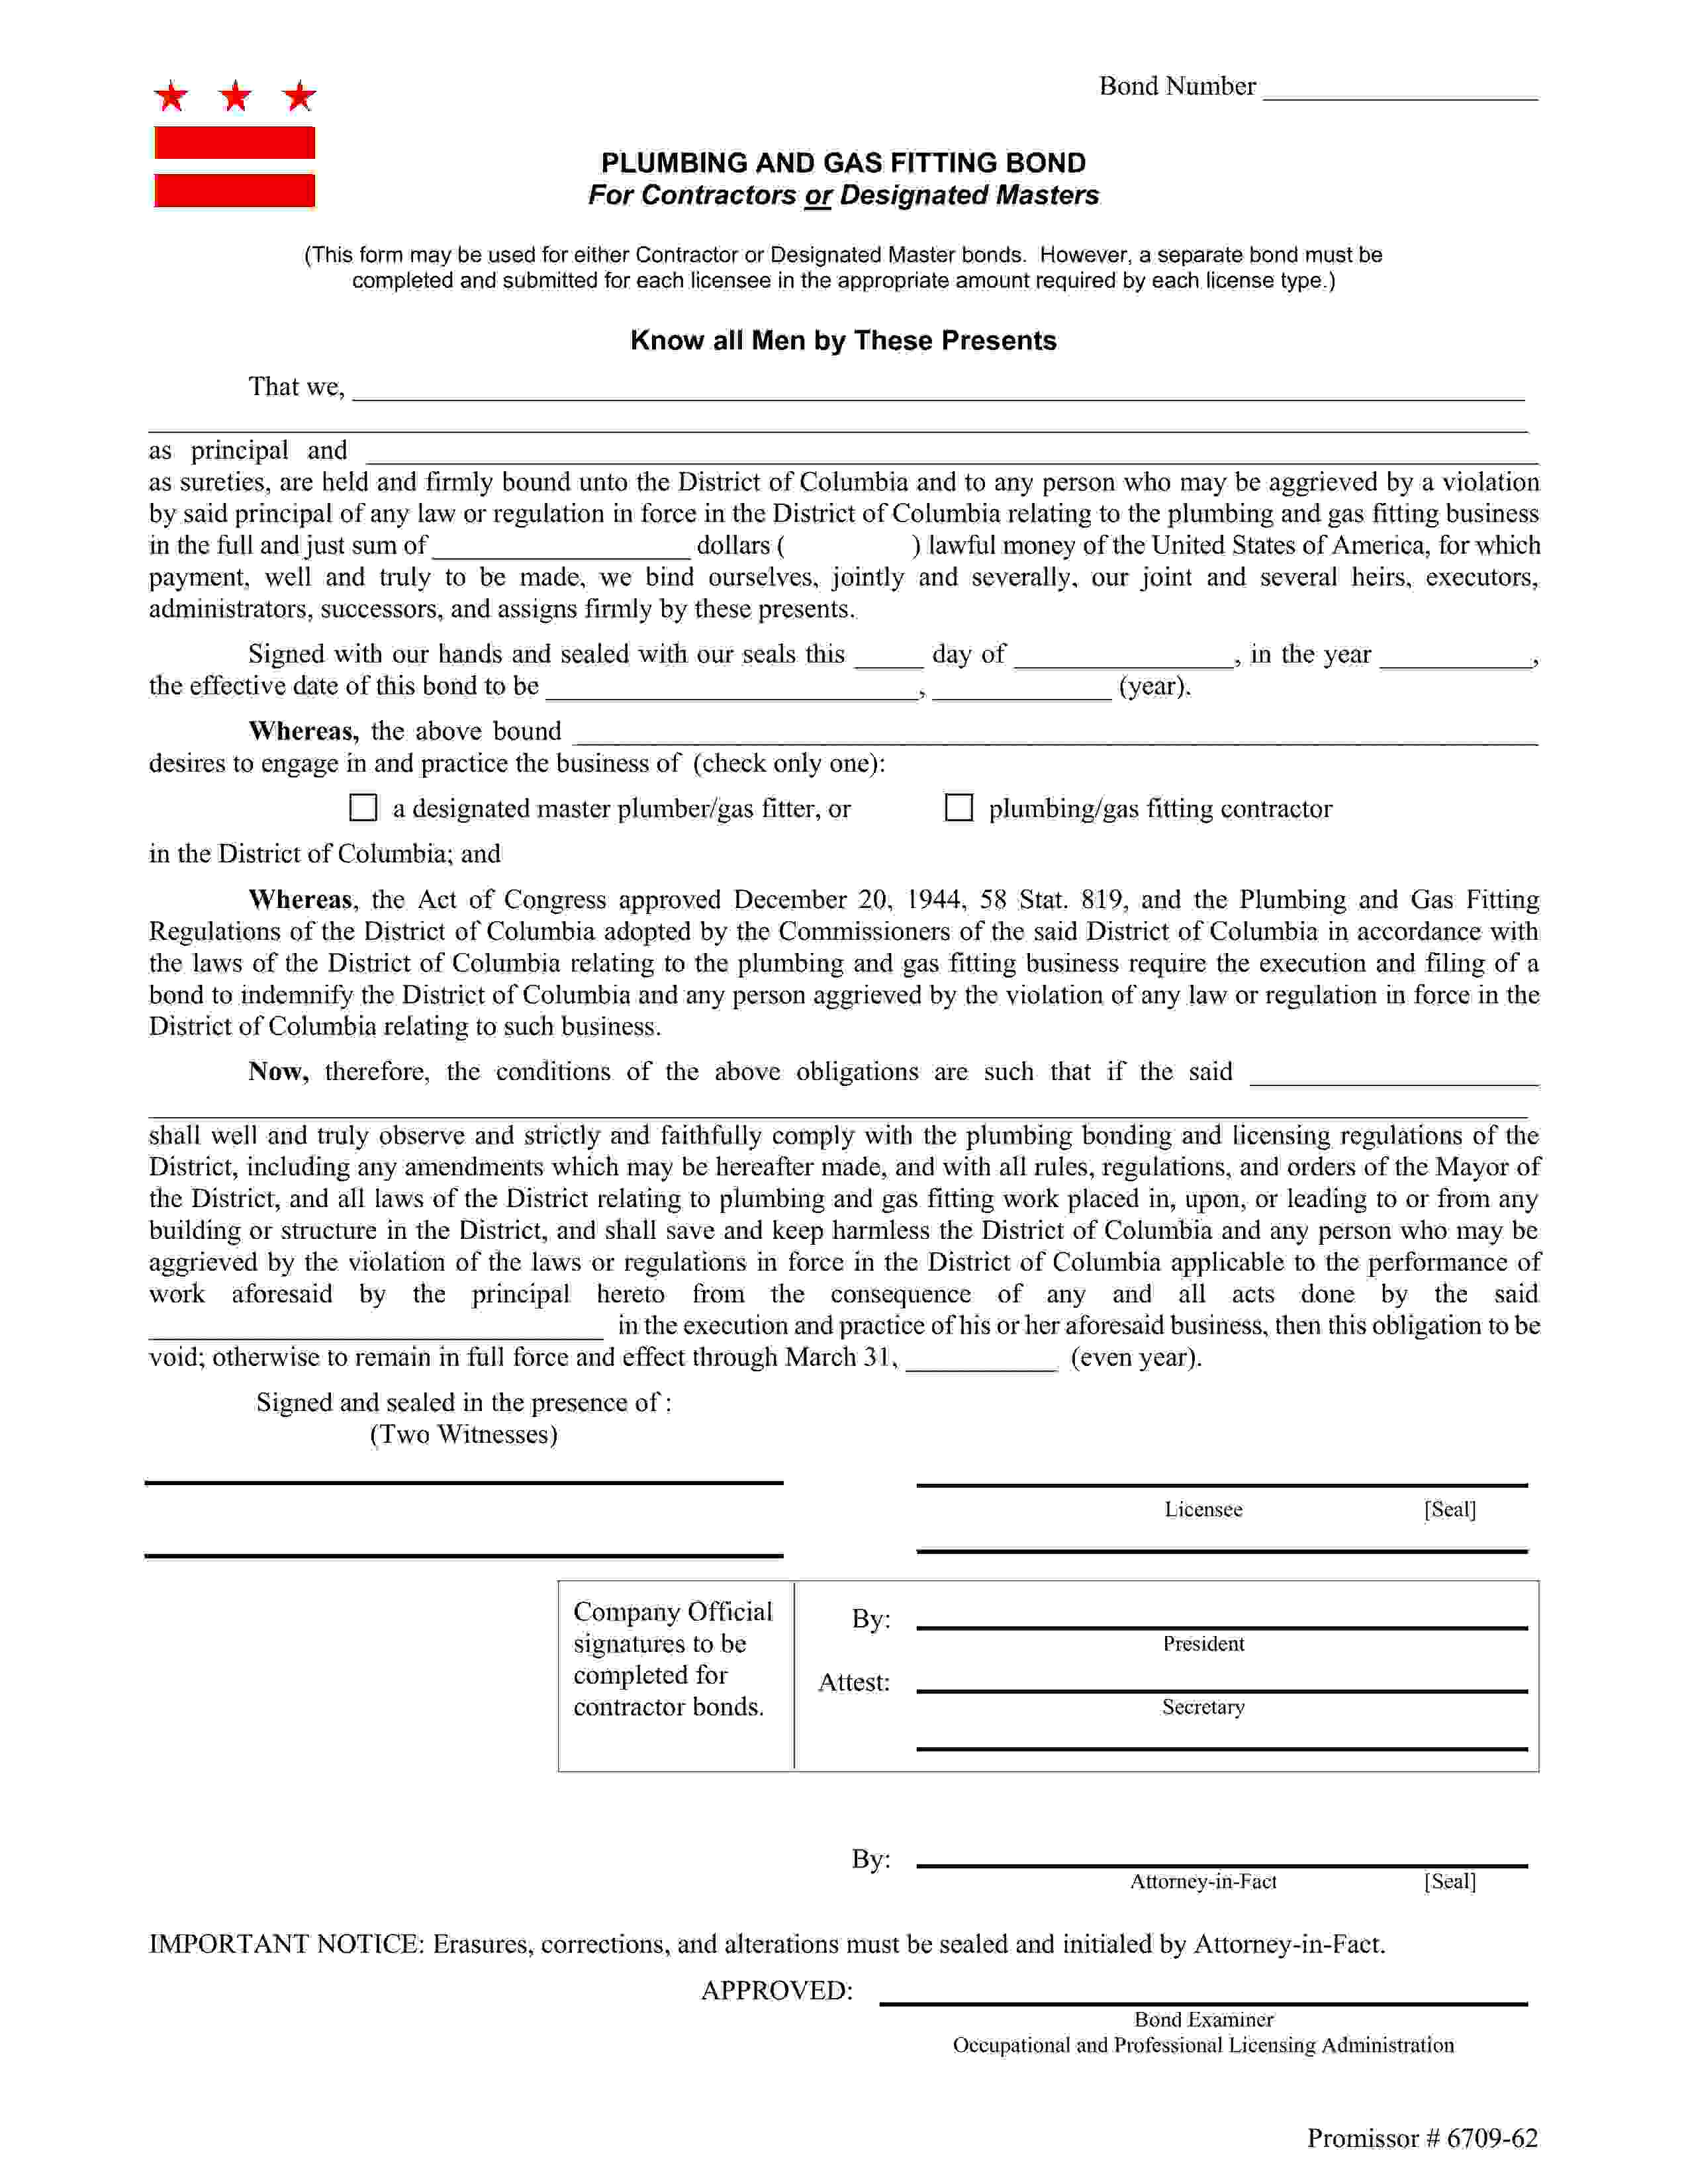 District of Columbia Designated Master Plumber/Gas Fitter Bond sample image